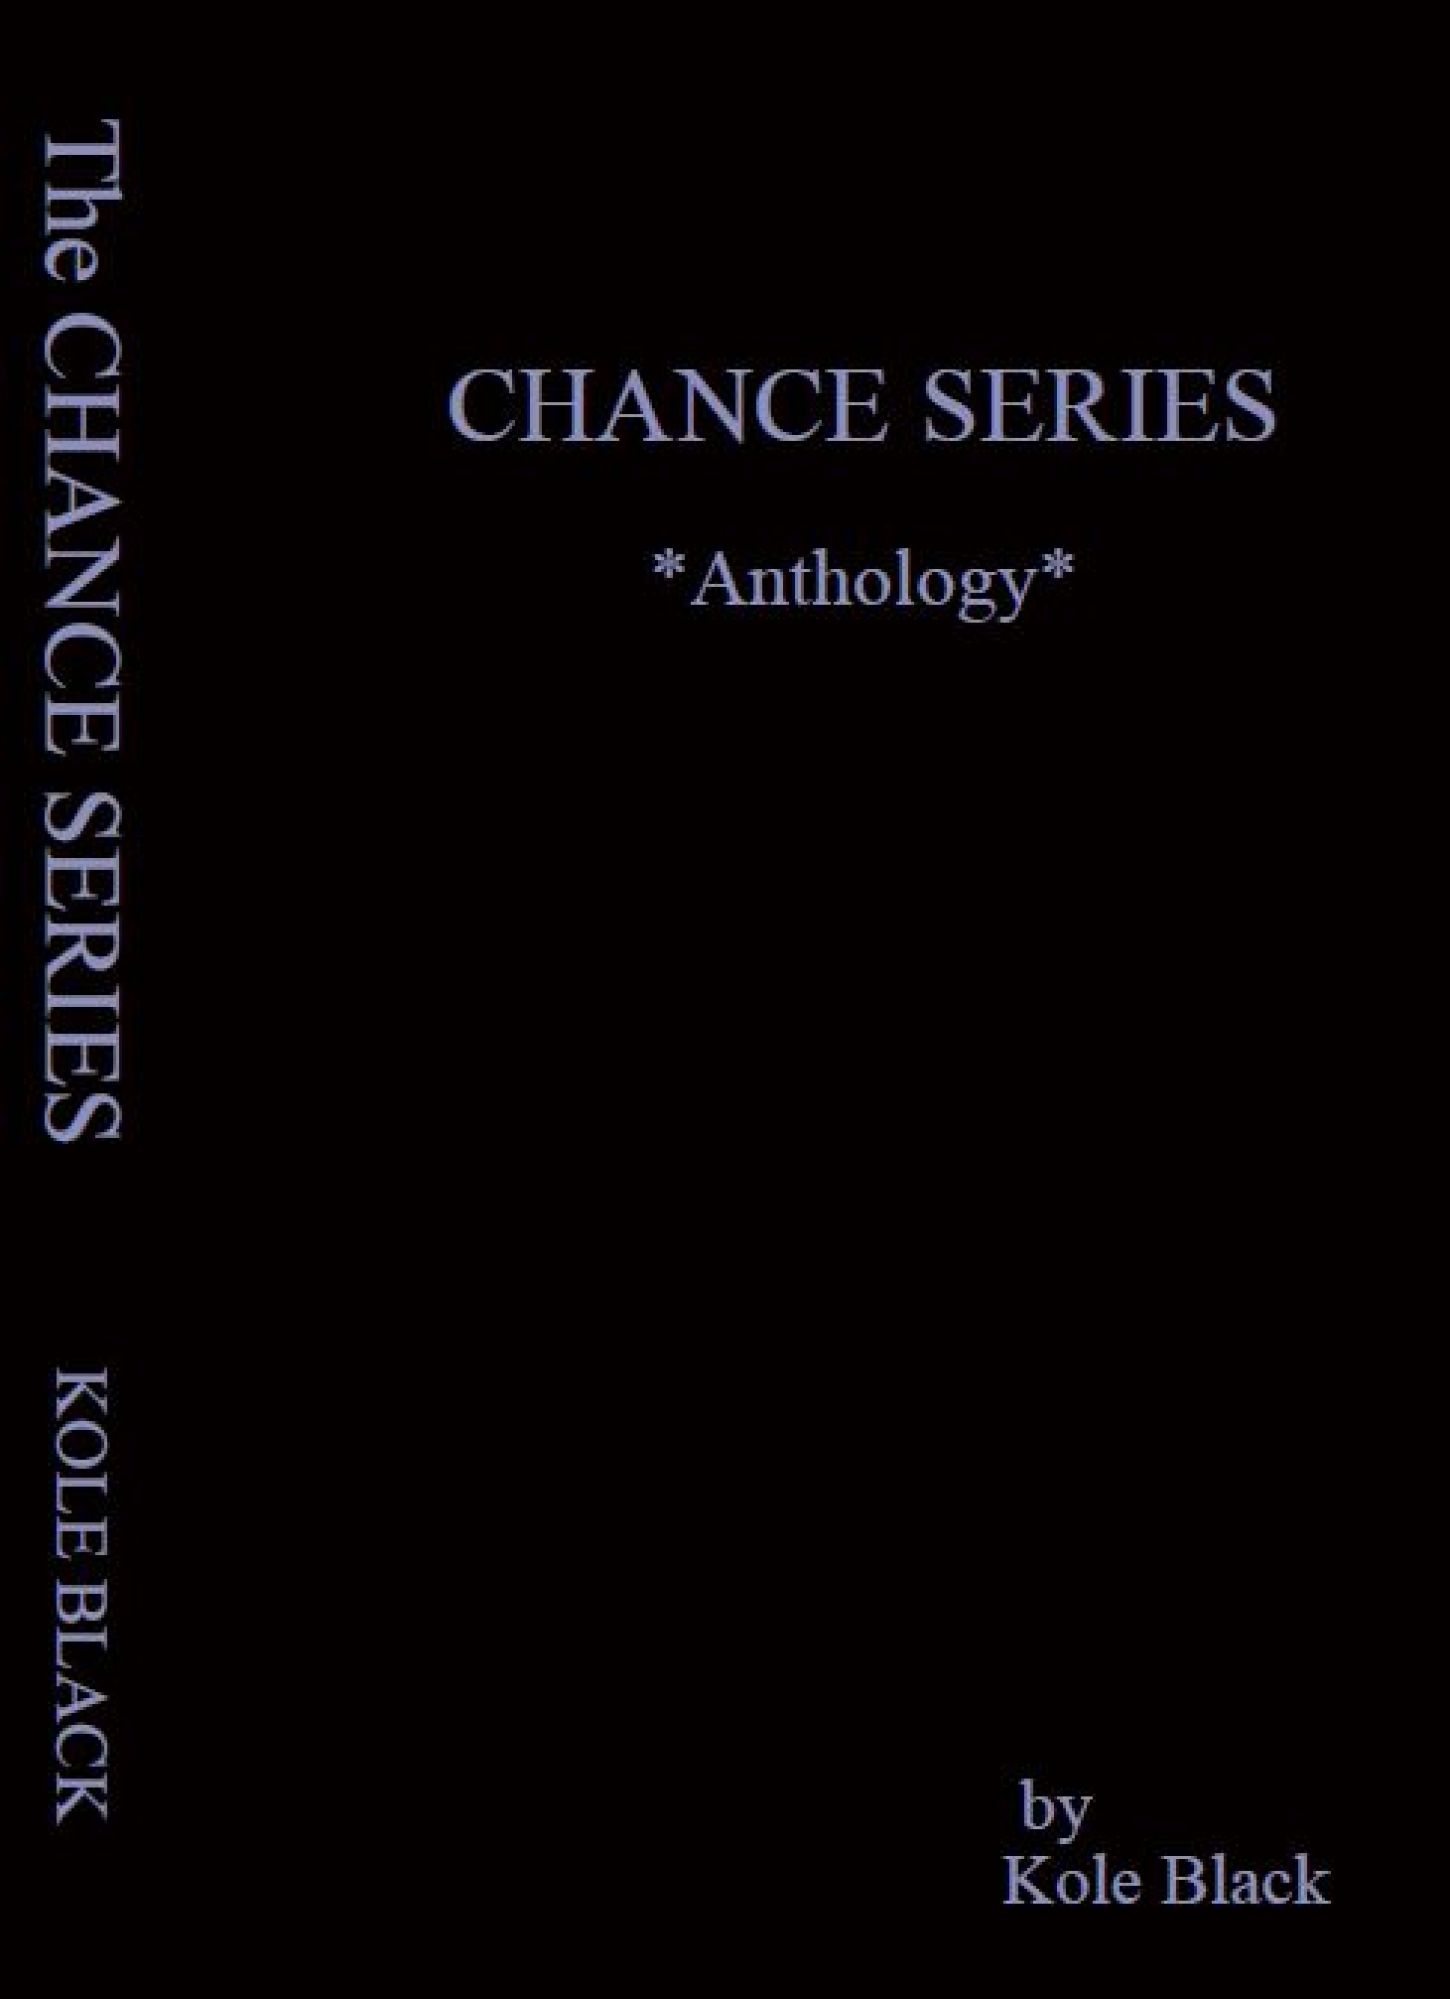 Oprah's BookClub 2.0 - Chance Series -Books 2, 3 & 4-